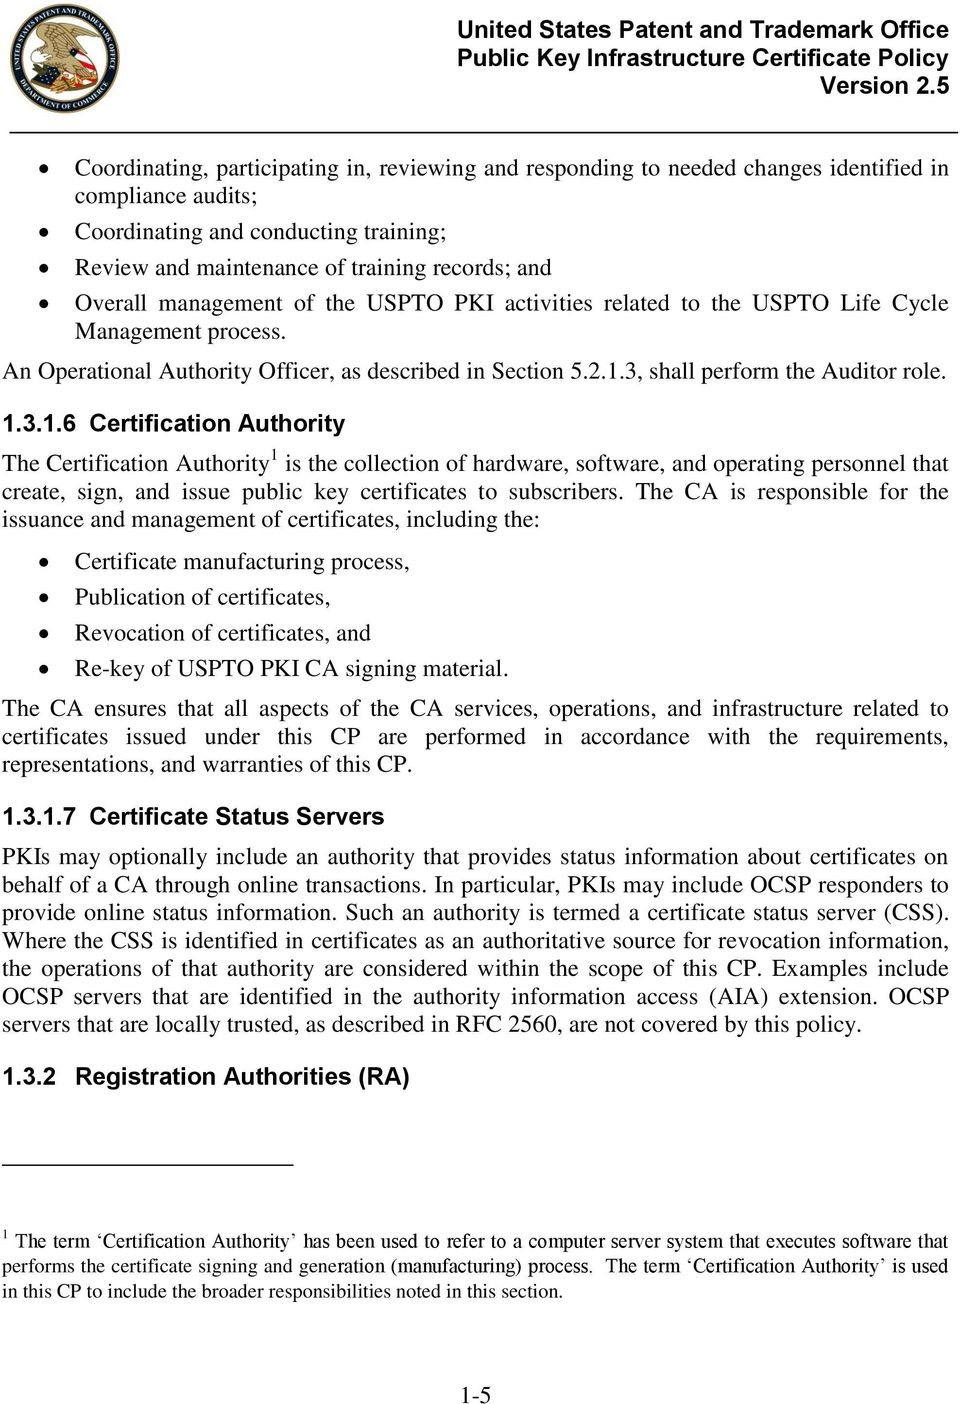 3.1.6 Certification Authority The Certification Authority 1 is the collection of hardware, software, and operating personnel that create, sign, and issue public key certificates to subscribers.